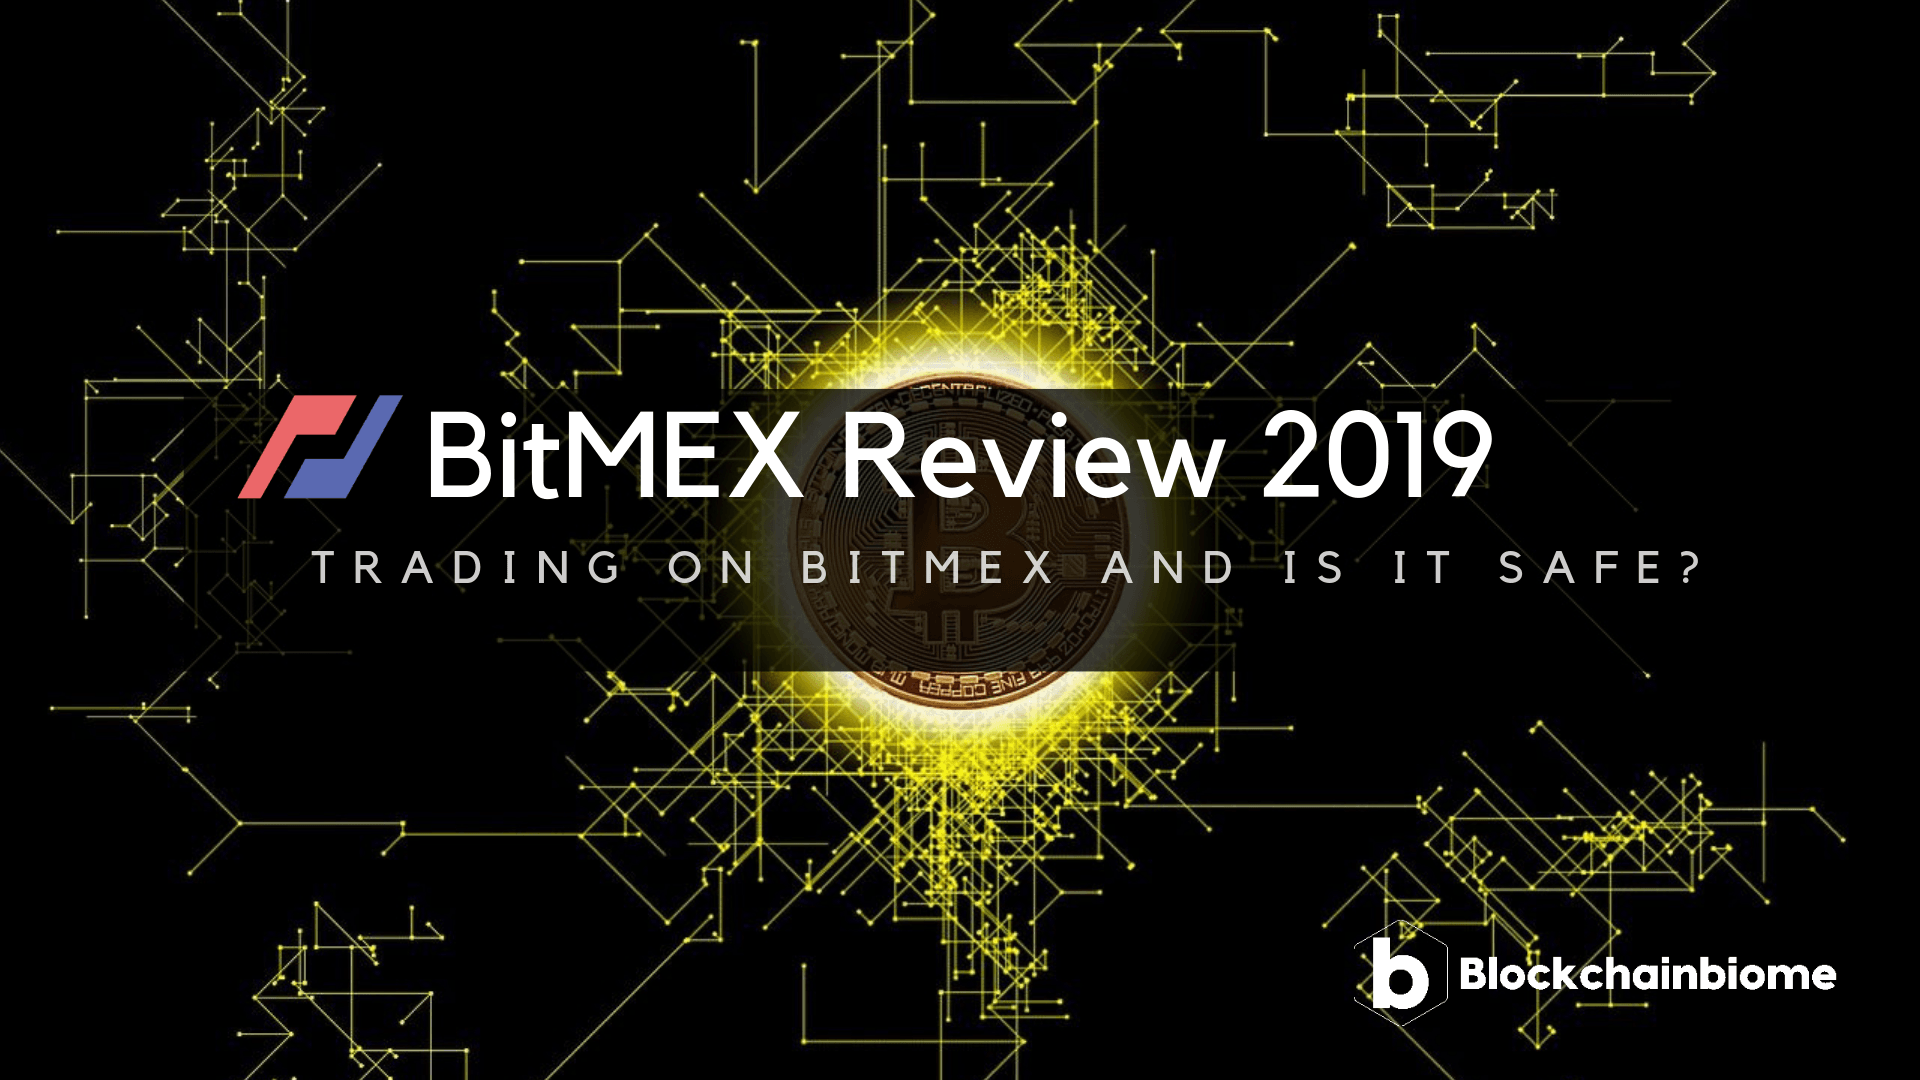 BitMEX Review 2019: Trading on BitMEX and is it safe? - BlockchainBiome